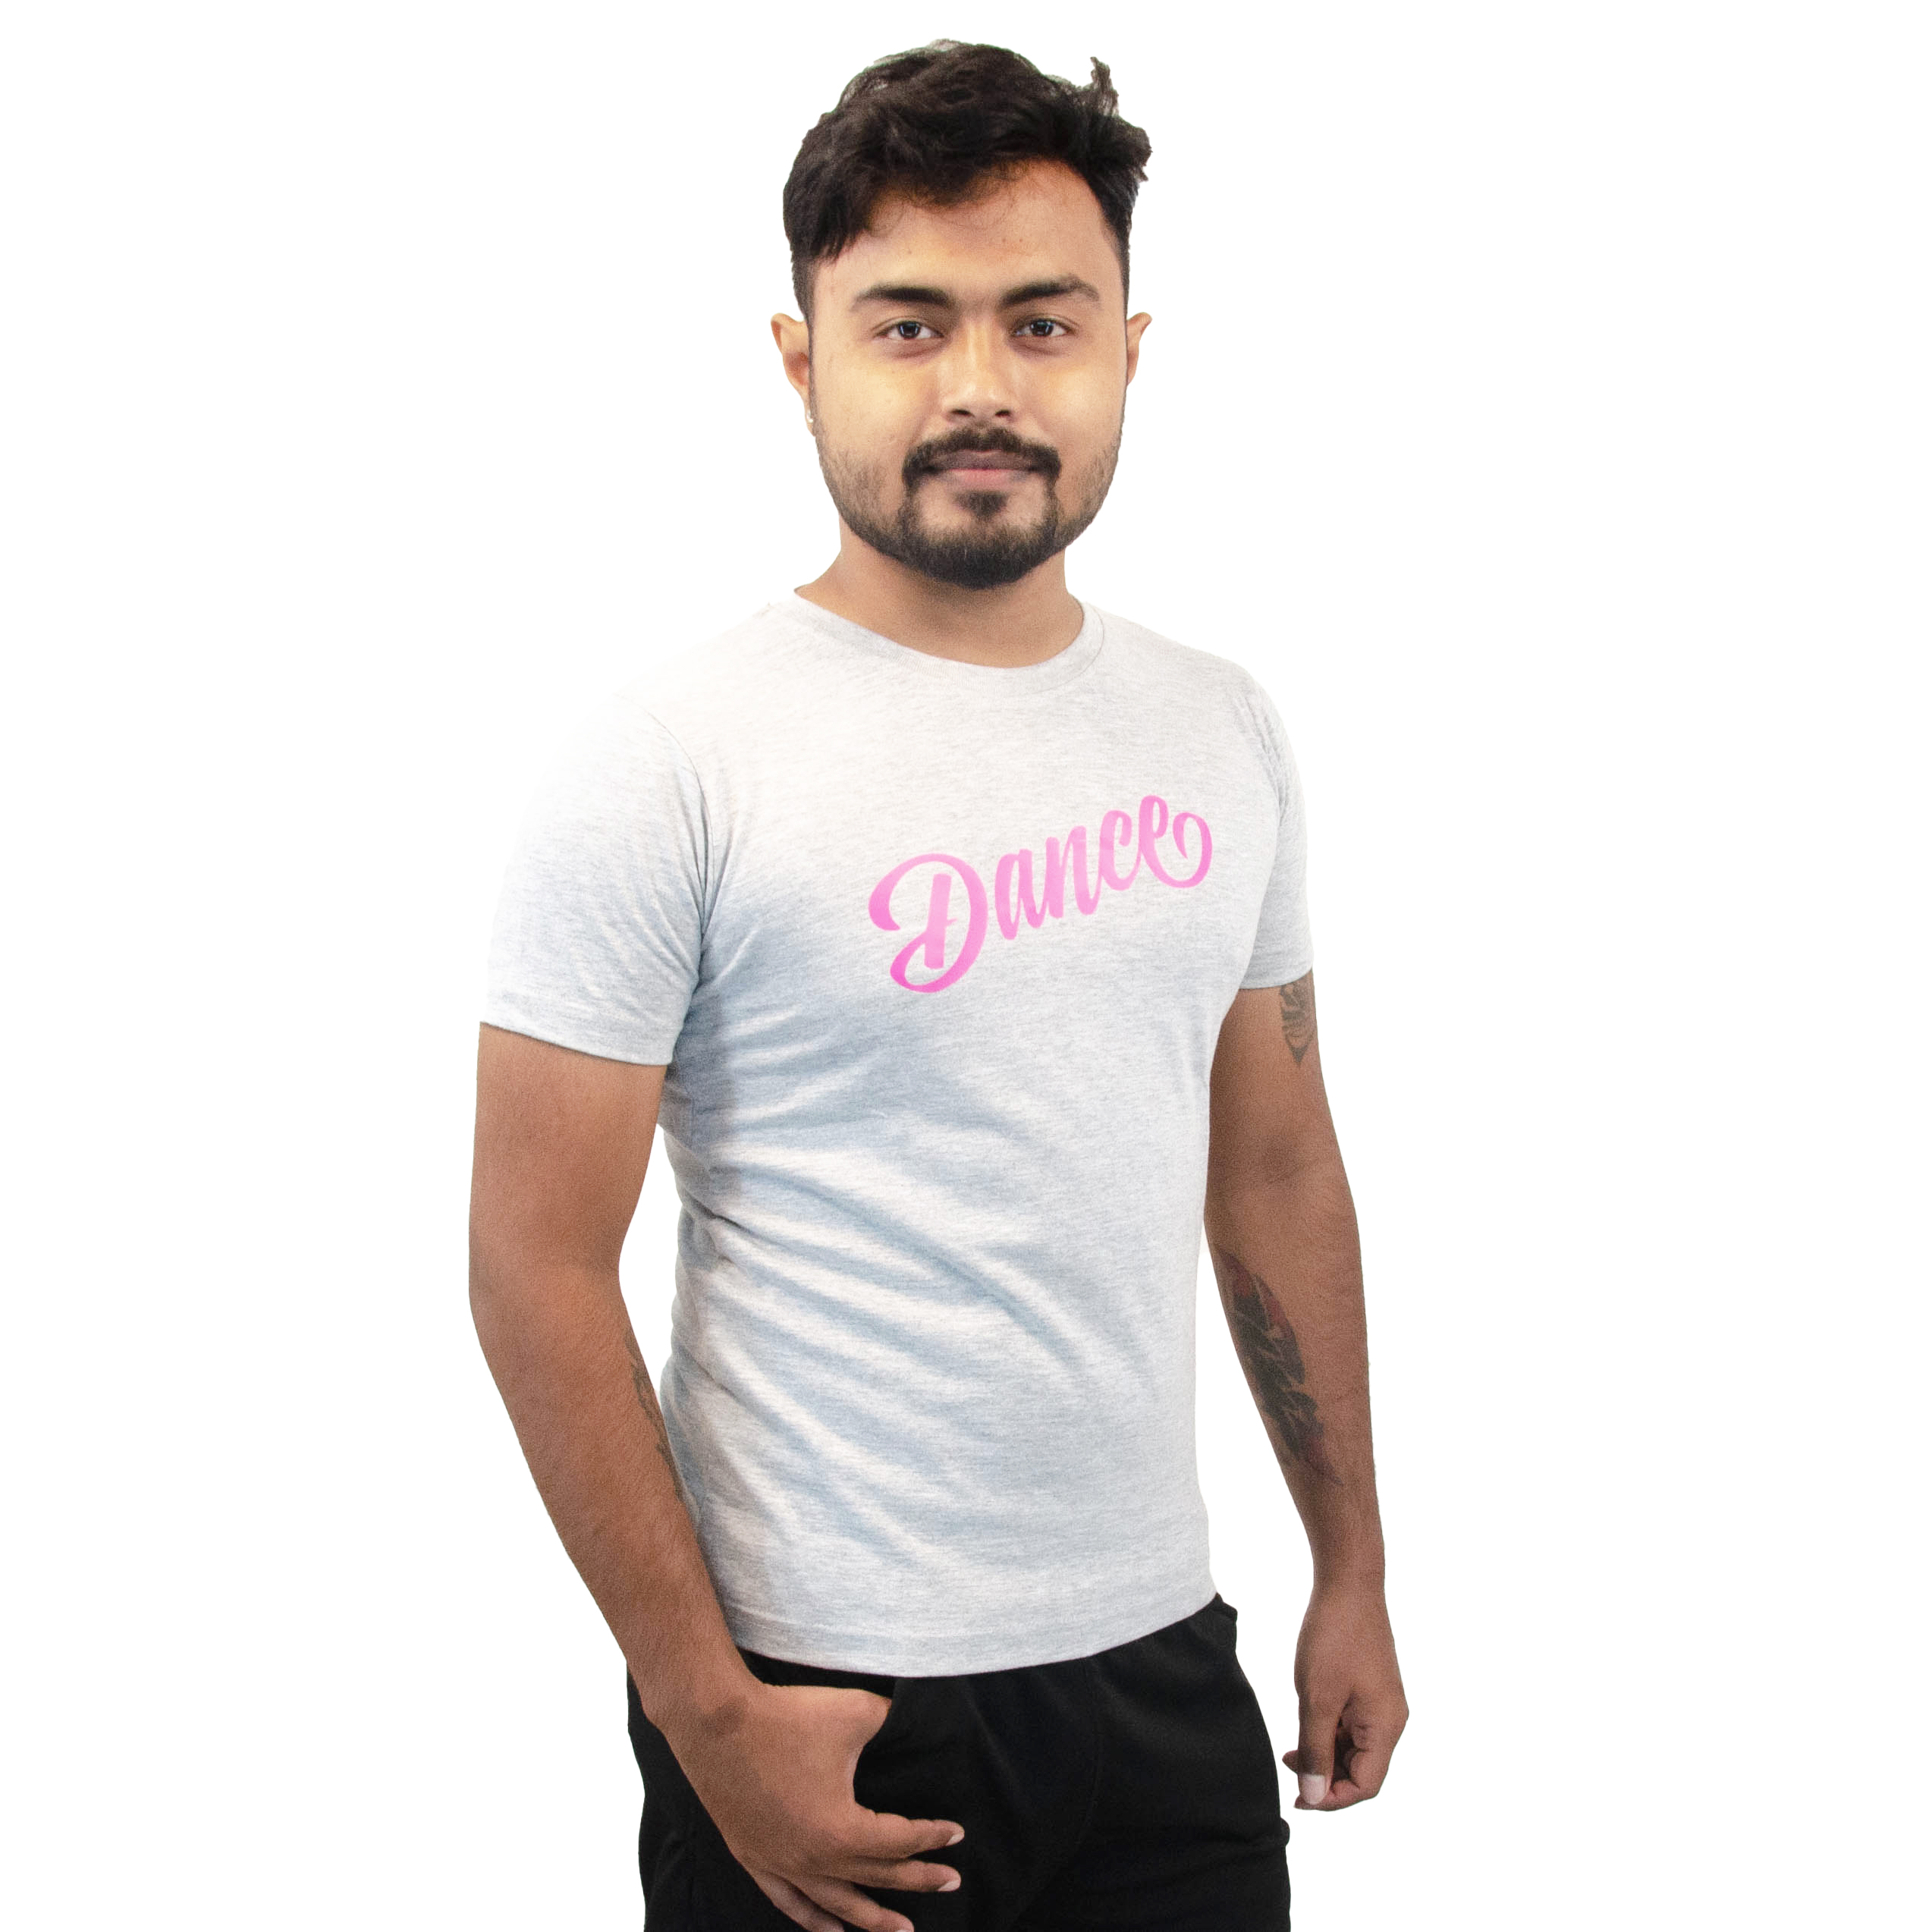 Dance T-Shirt Printed in Pink